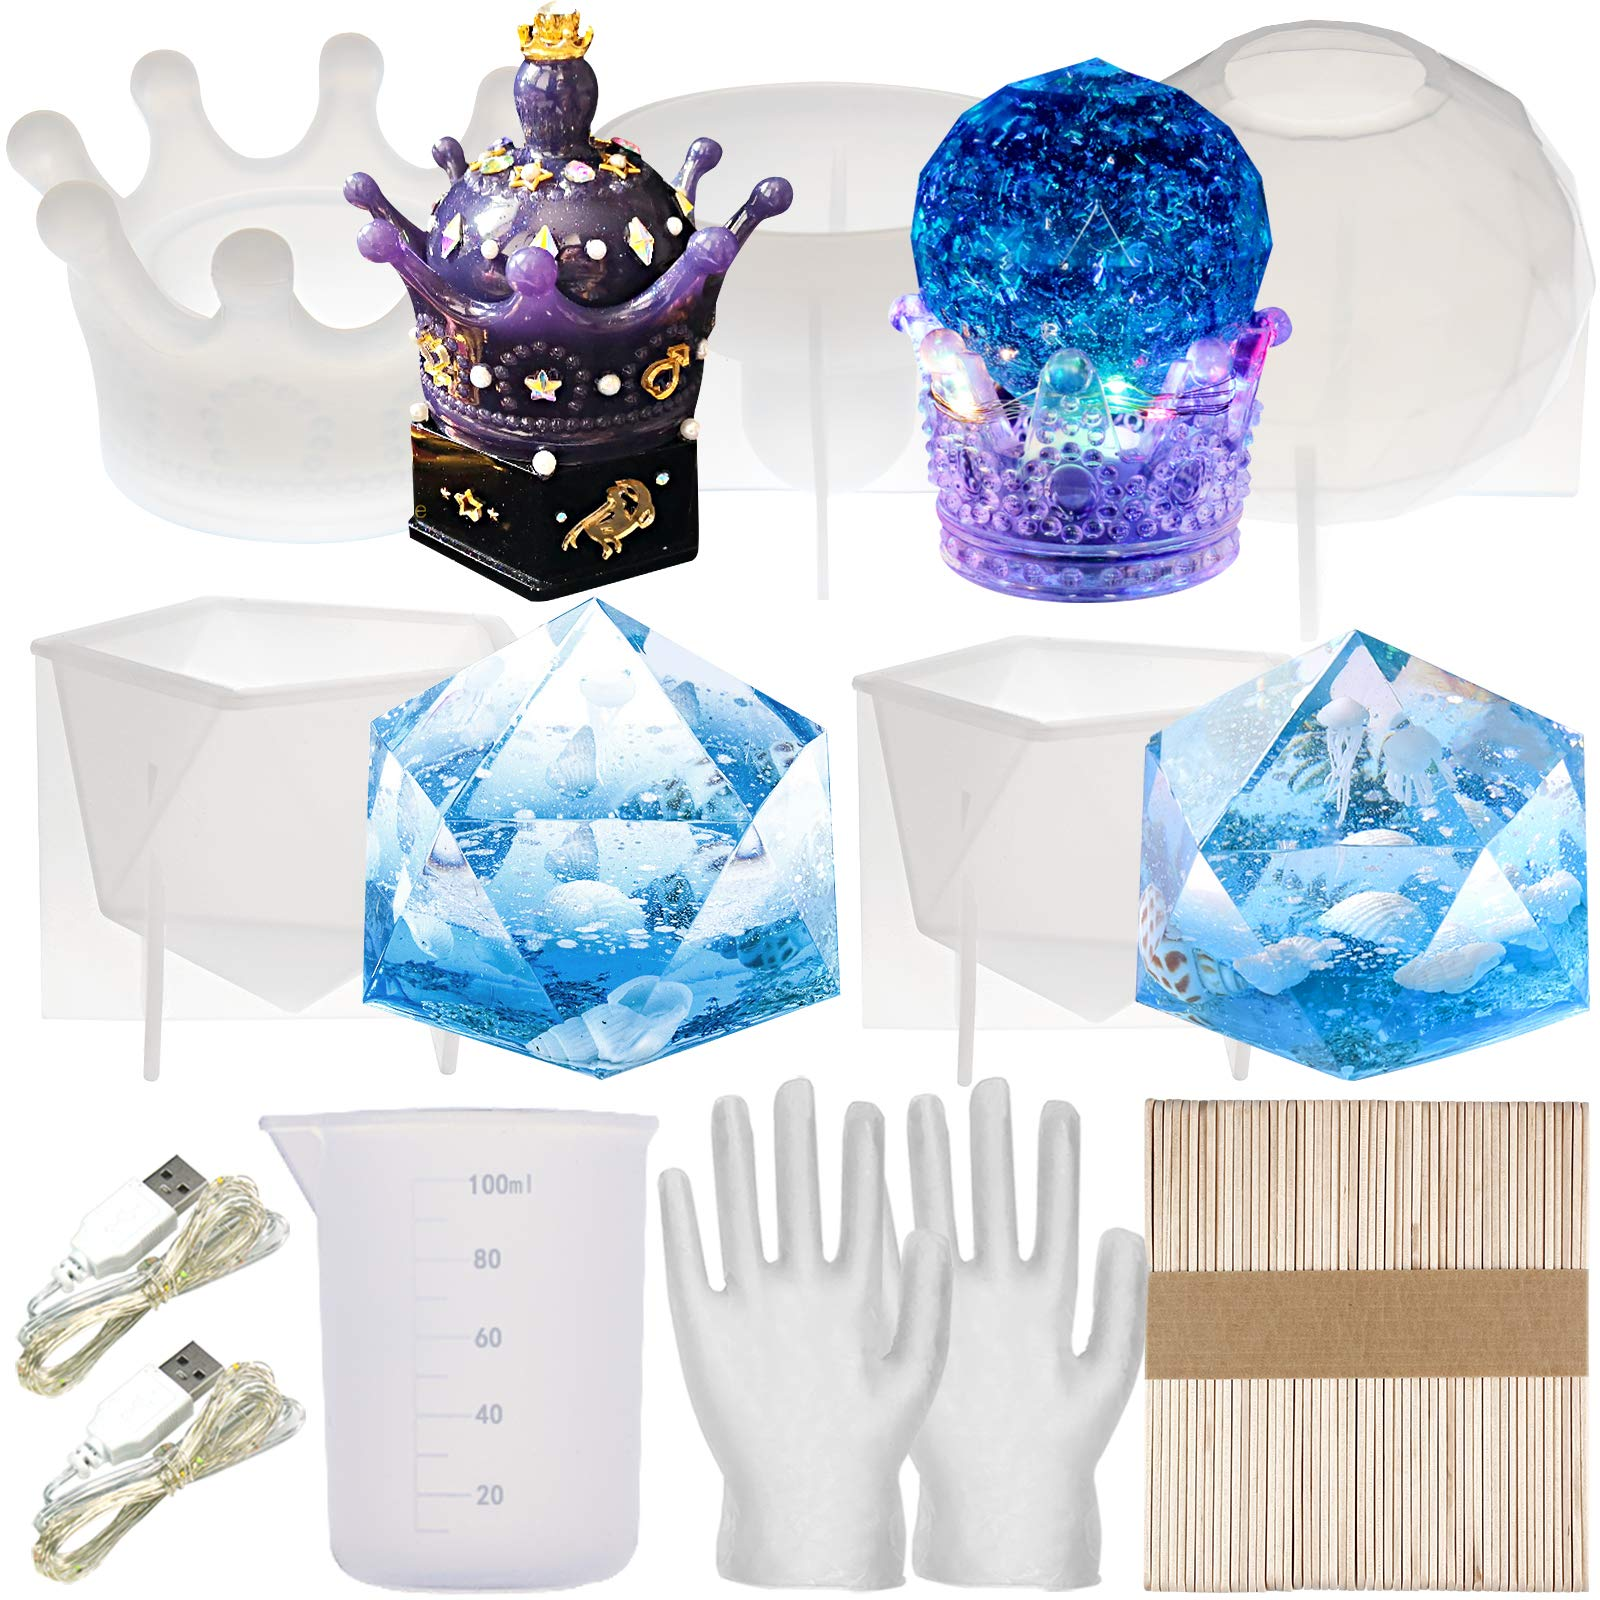 Geometric Epoxy Resin Molds Crown Trinket Box, Finial Diamond Prism, Faceted Crystal Ball Set, Measuring Cup, Wood Sticks, LED Lamp, Gloves for Concrete, Cement, Plaster, Soap Making, Candle Crafts